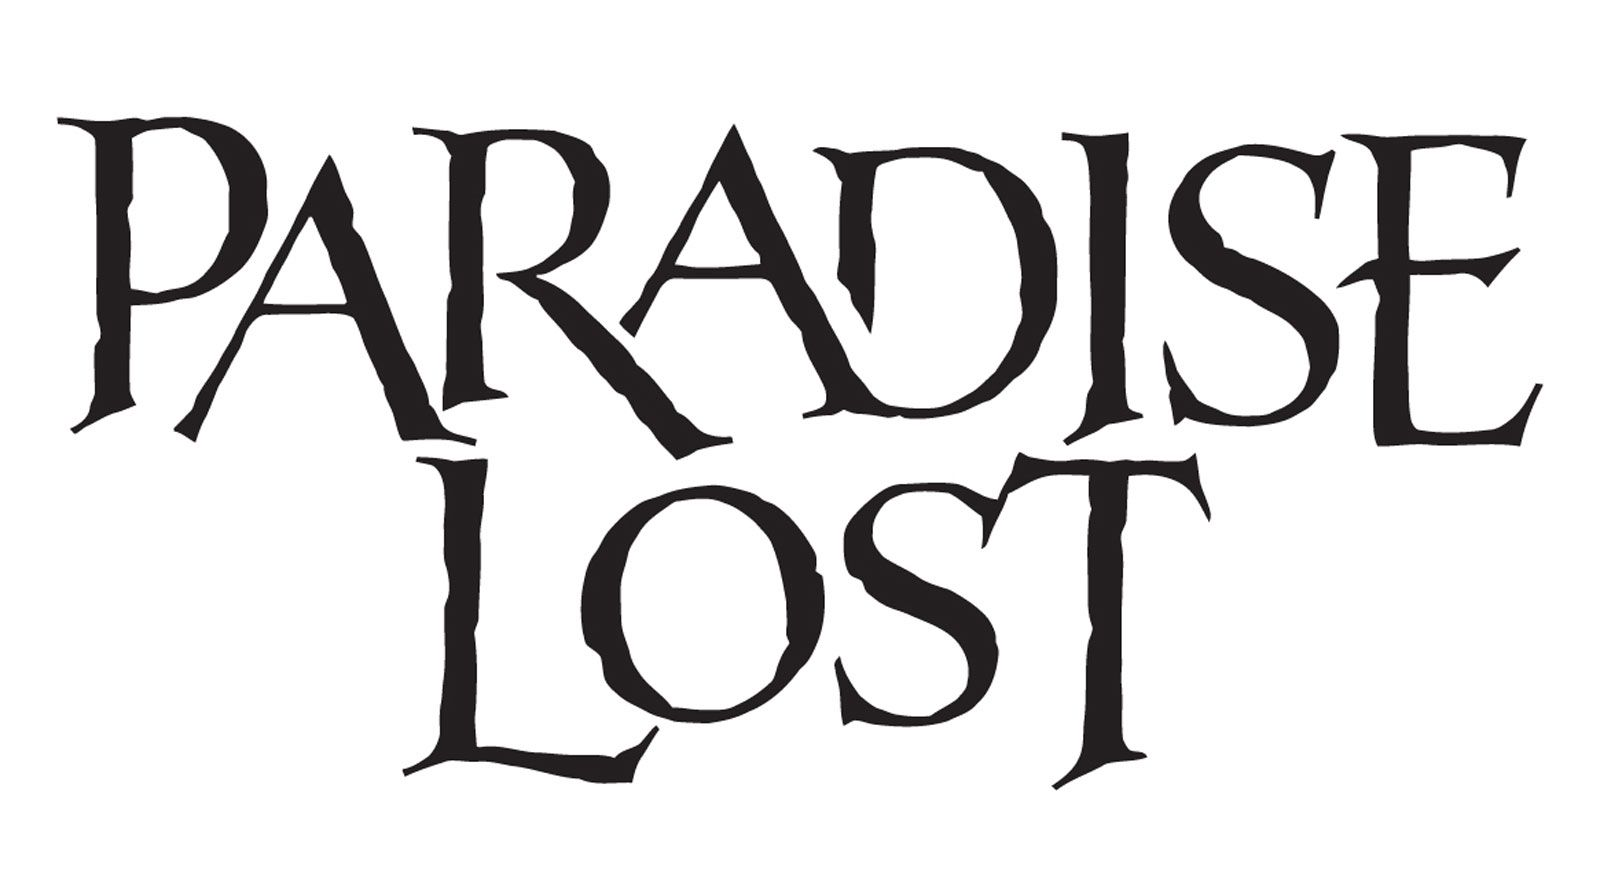 Paradise Lost #logo (With images) | Metal band logos, Metal girl ...